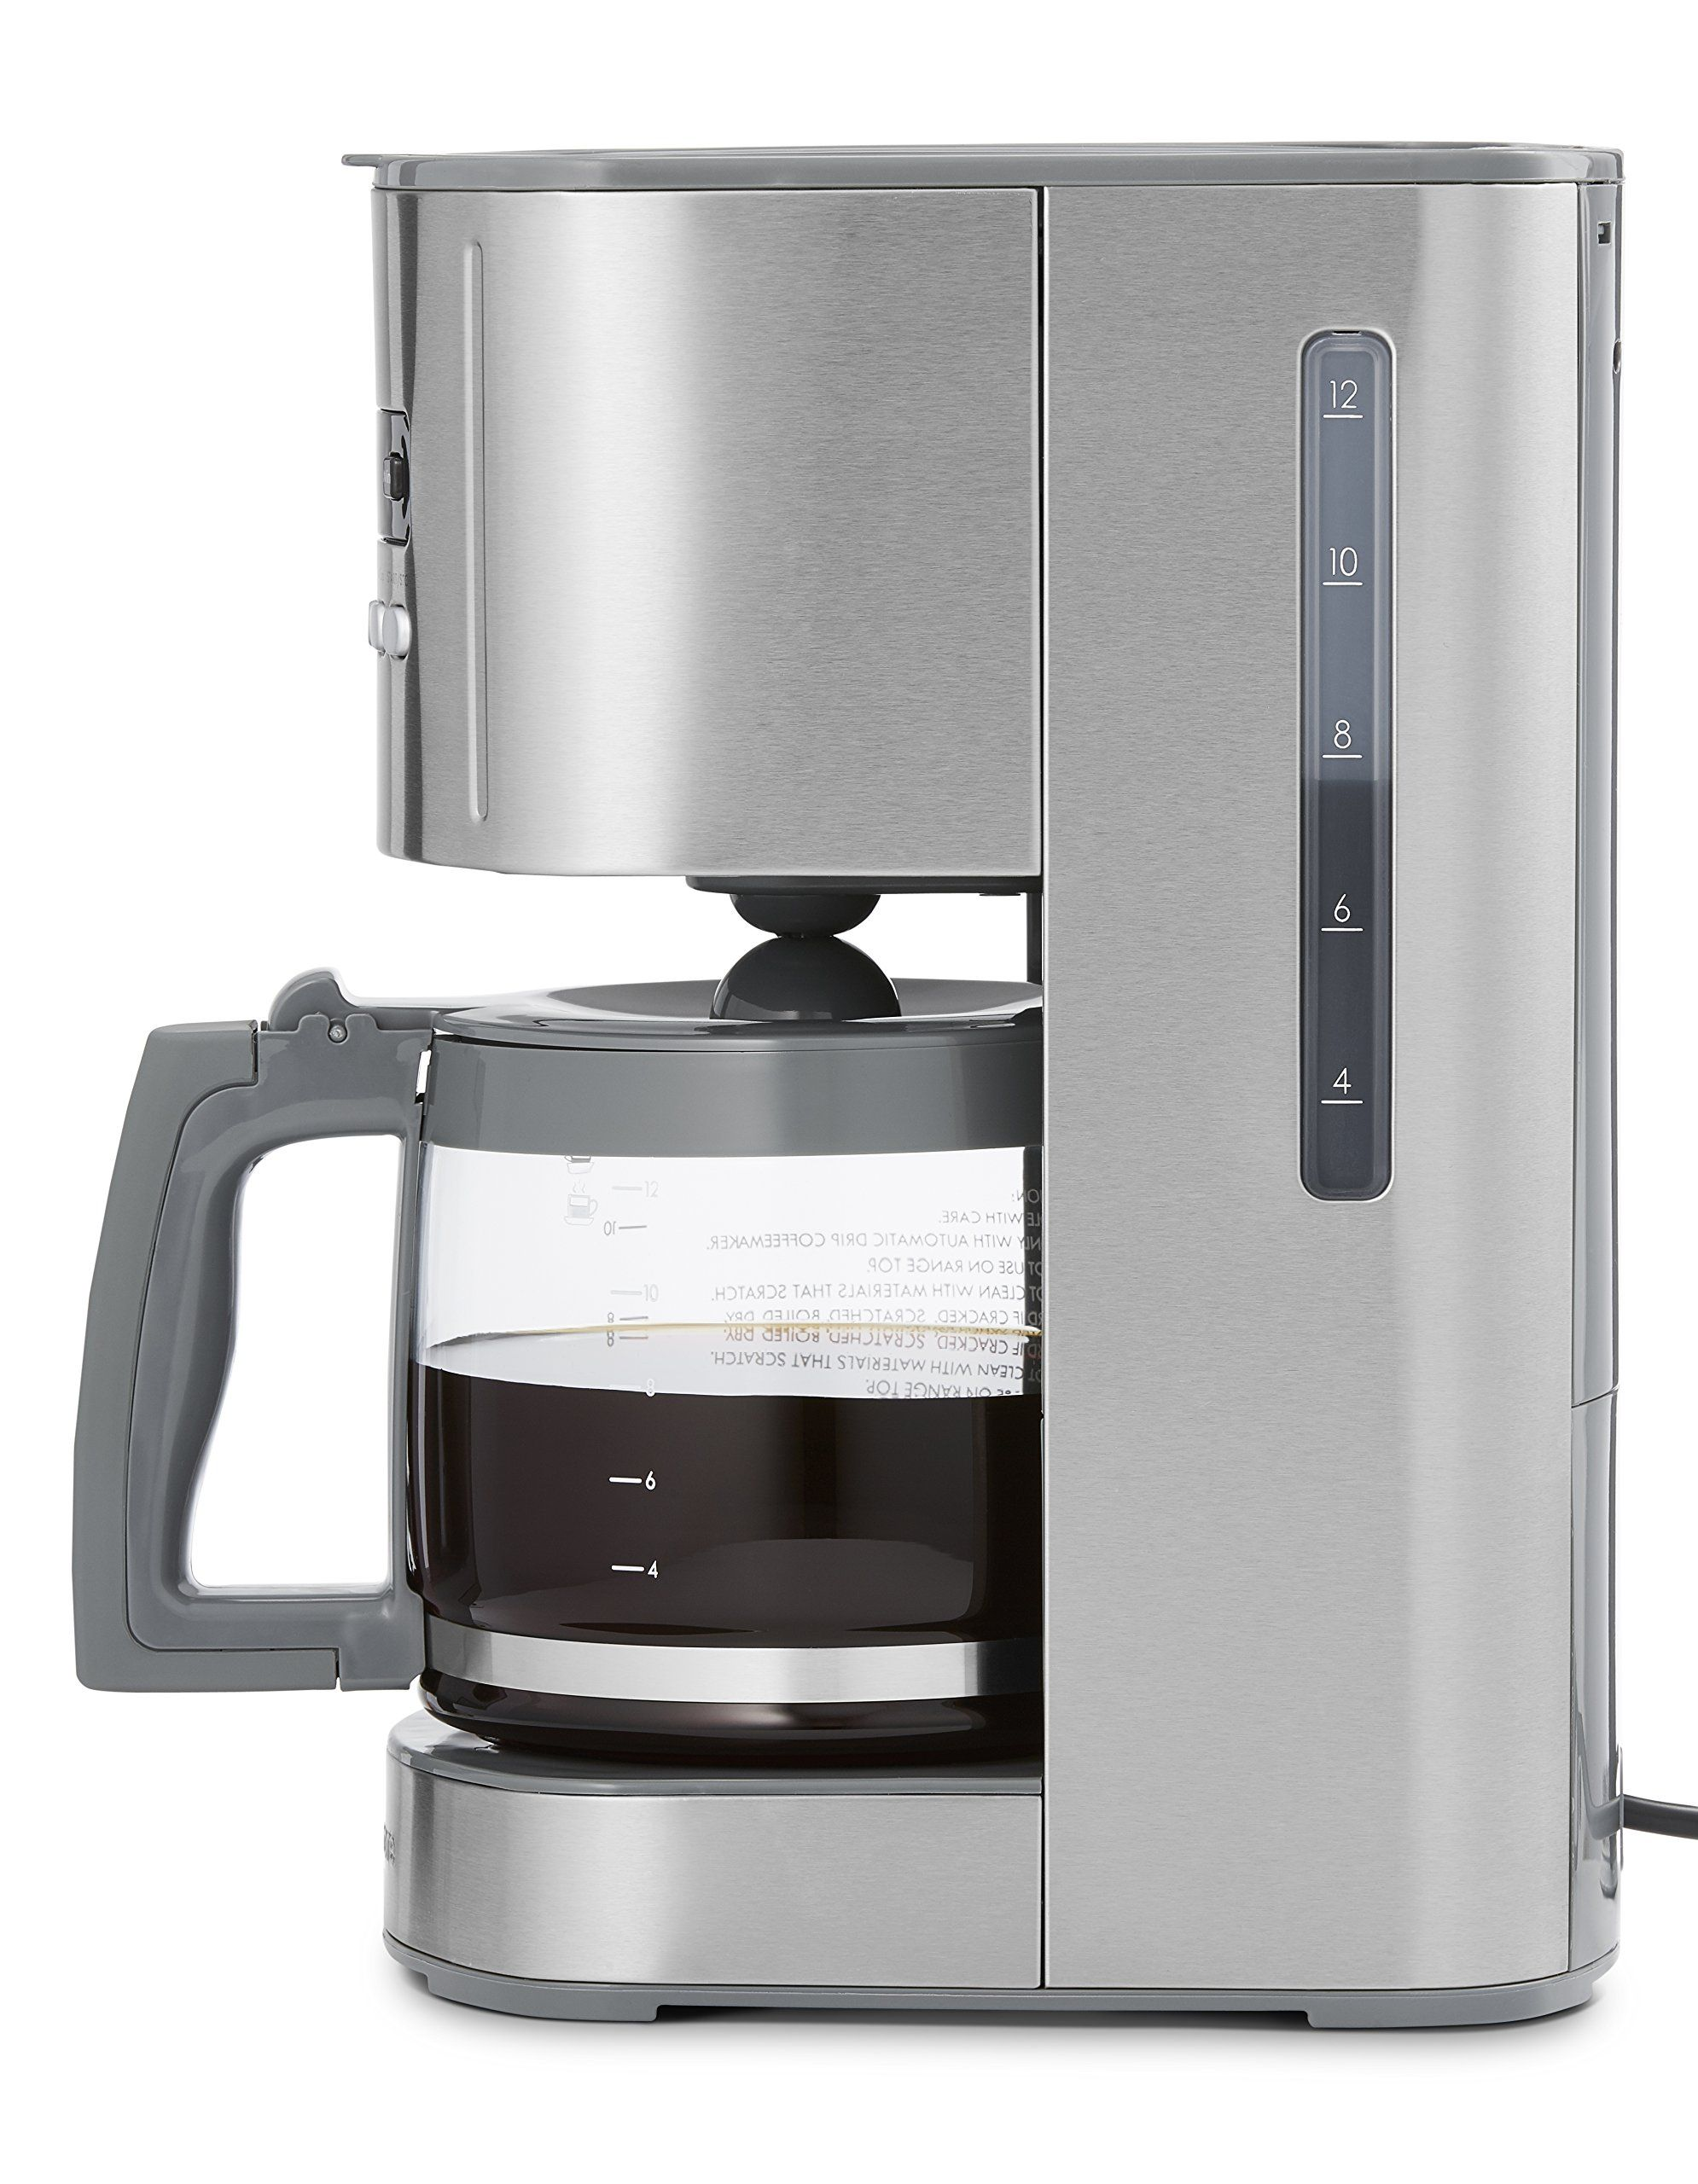 Kenmore 40706 12Cup Programmable Aroma Control Coffee